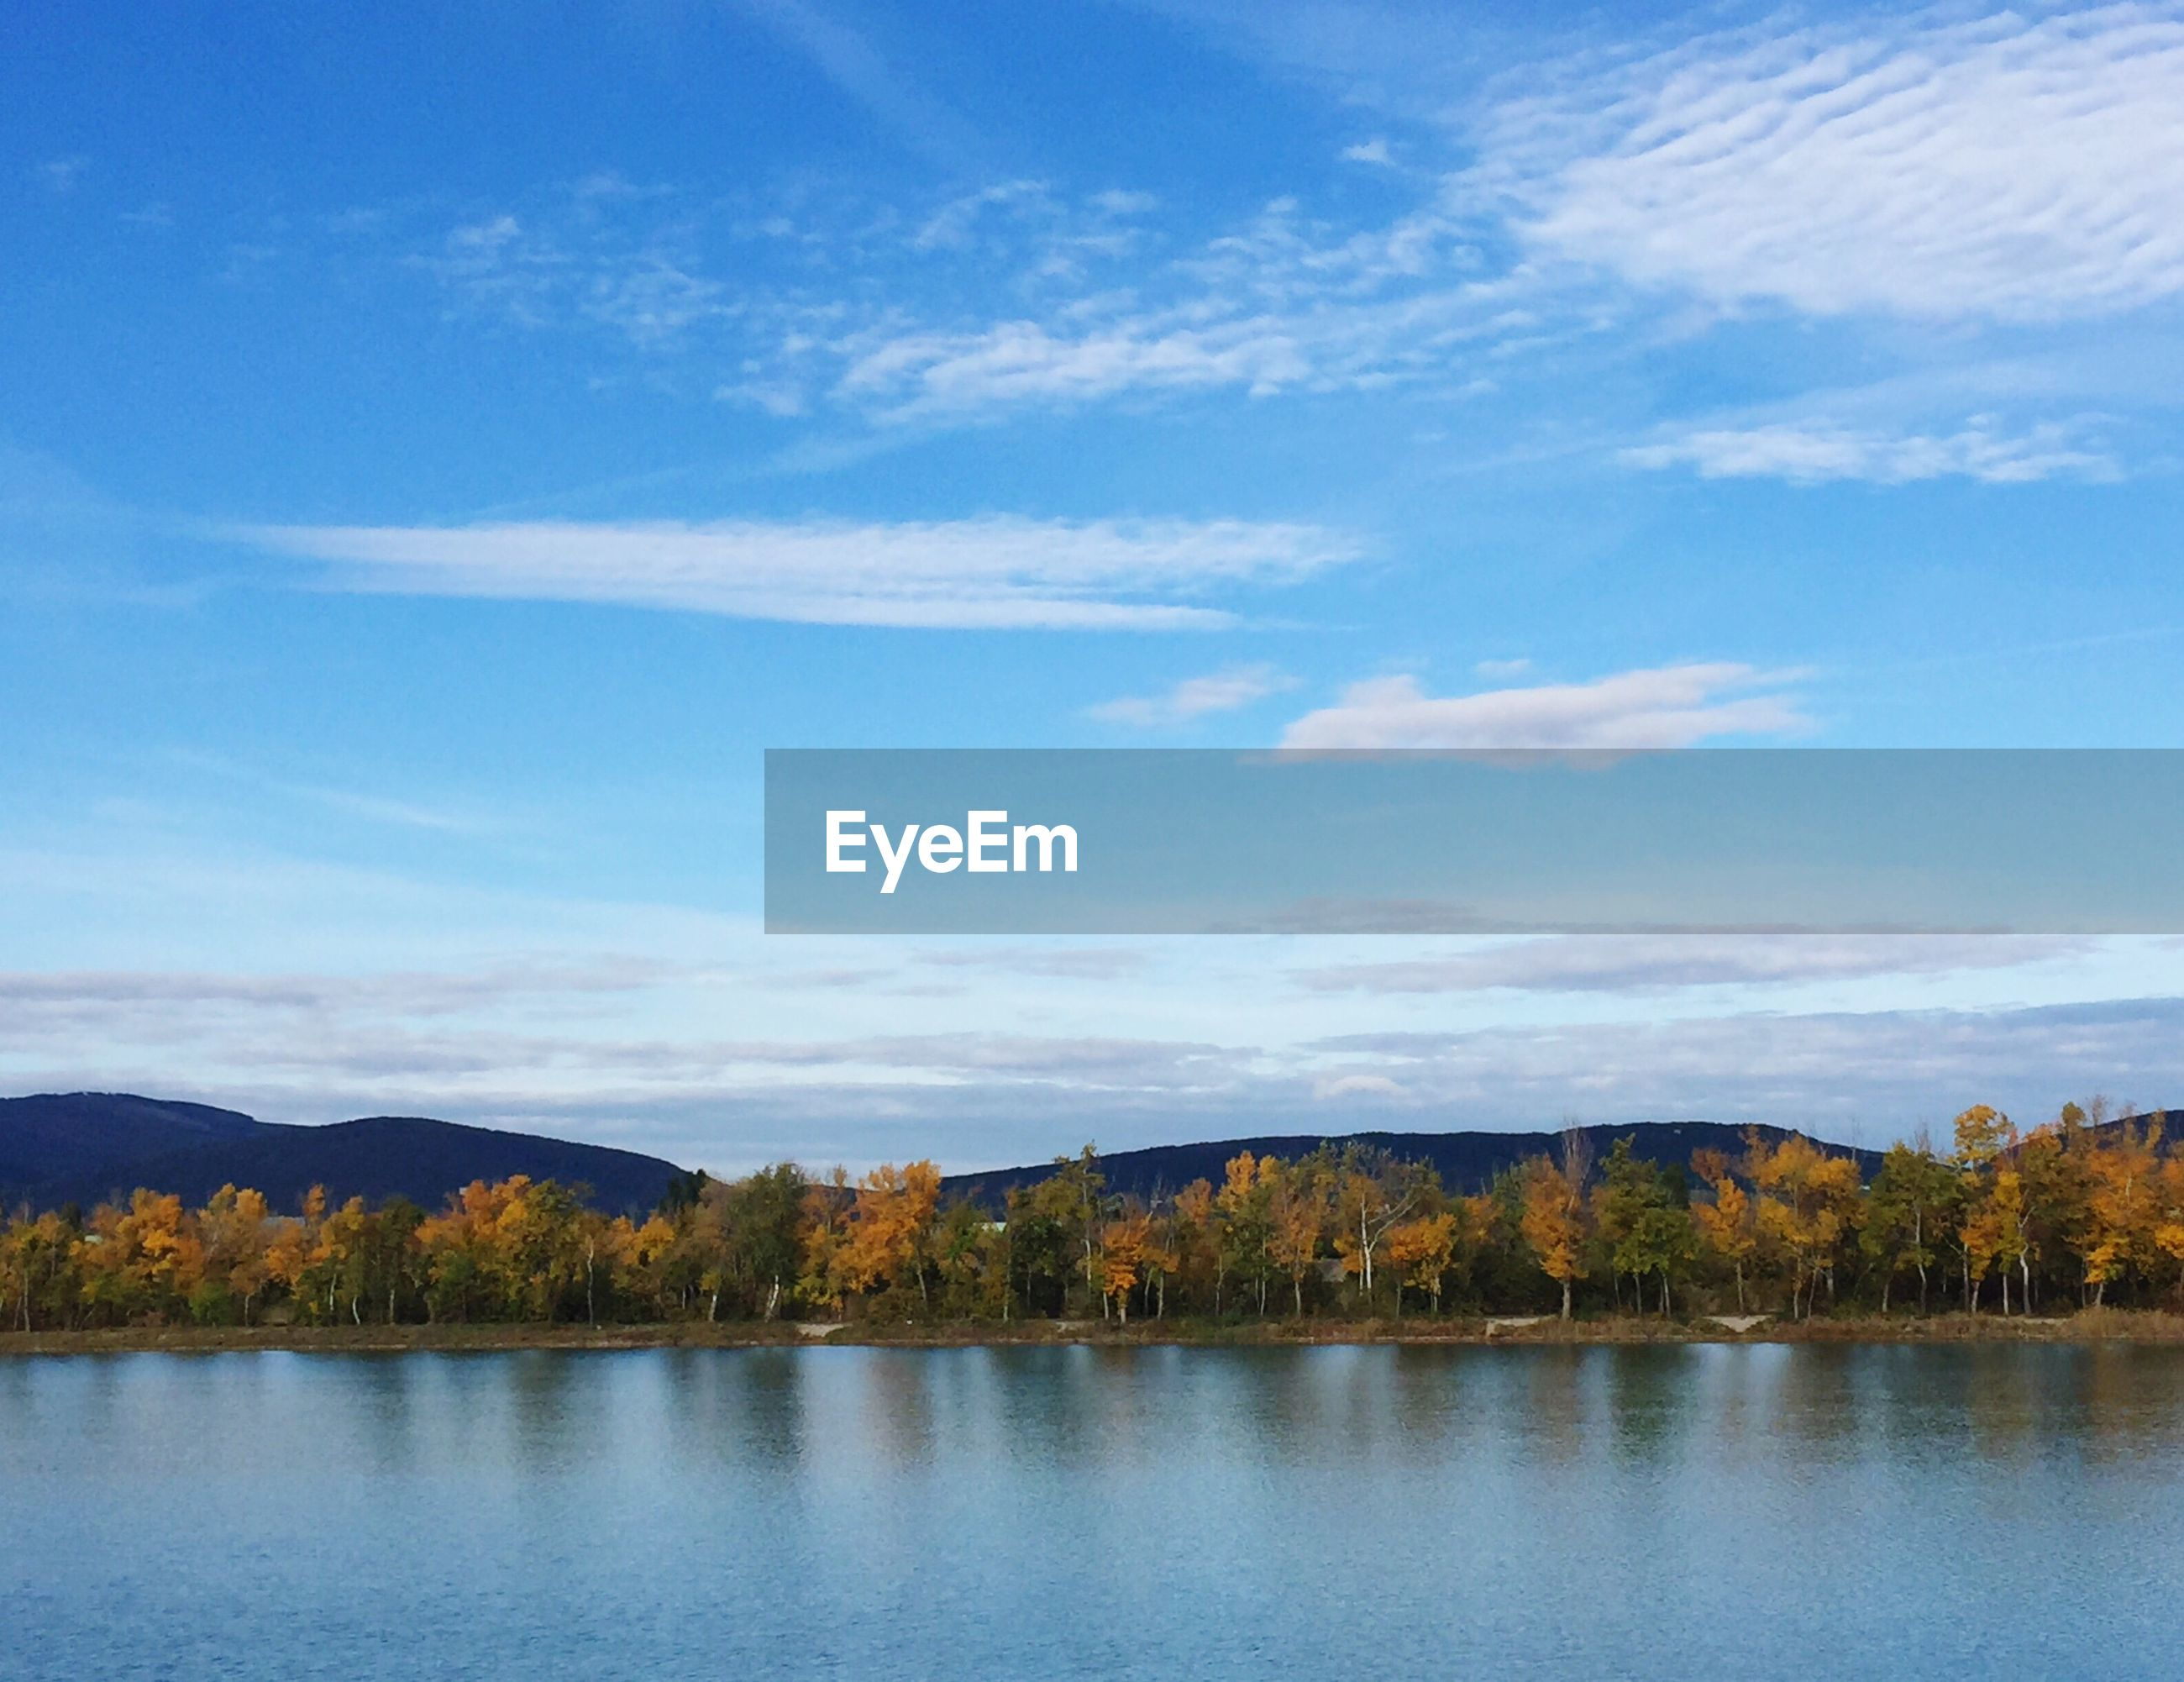 SCENIC VIEW OF LAKE AND TREES AGAINST BLUE SKY